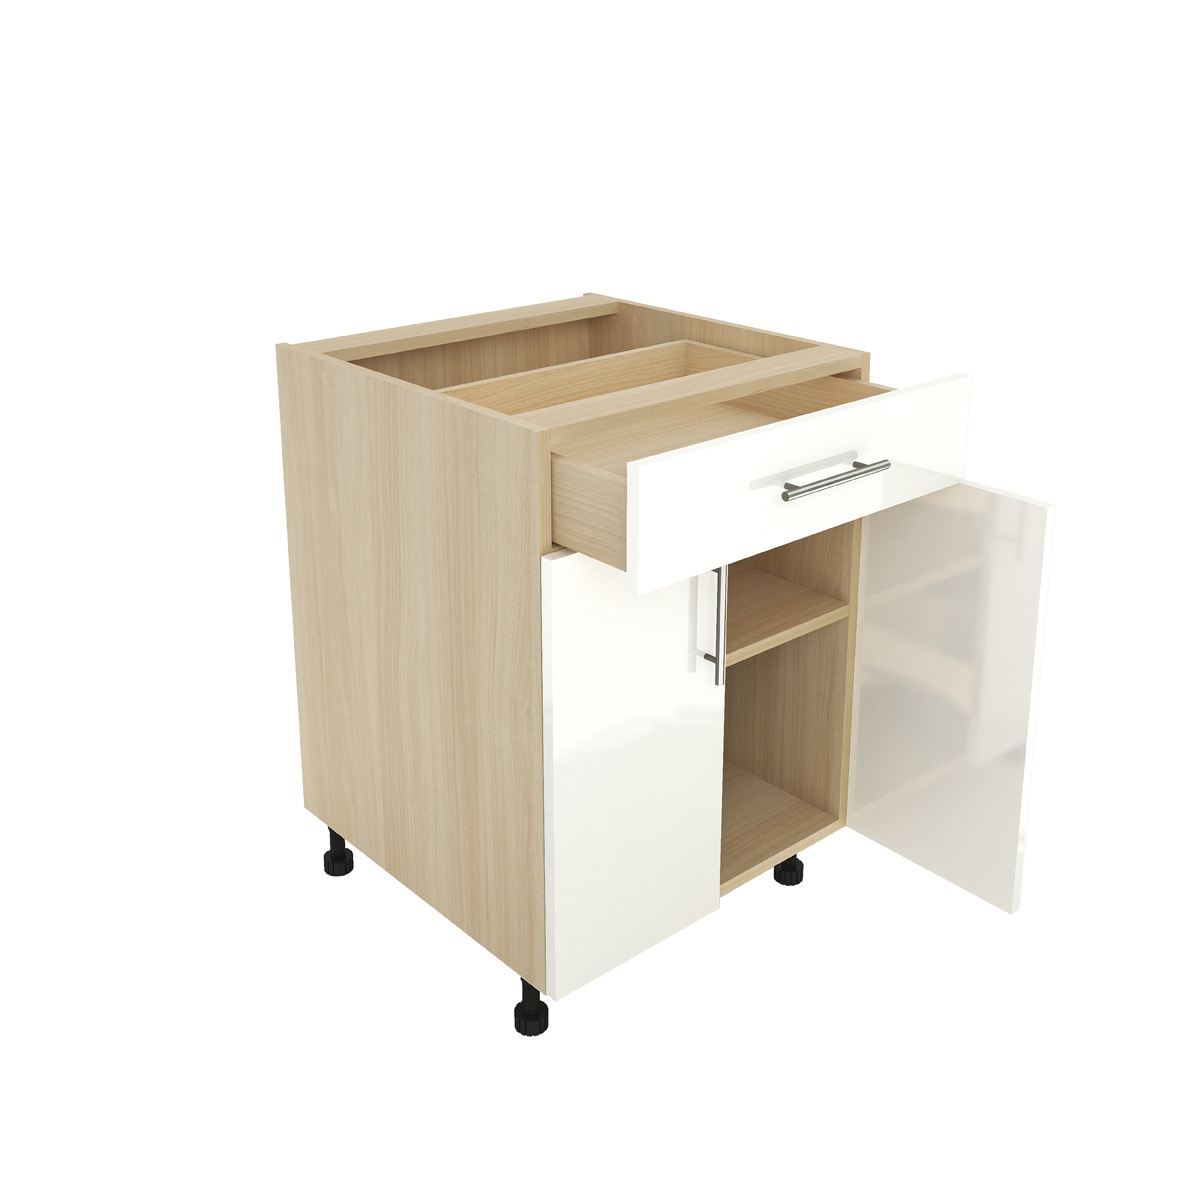 Base 1 Drawer Top Cabinet